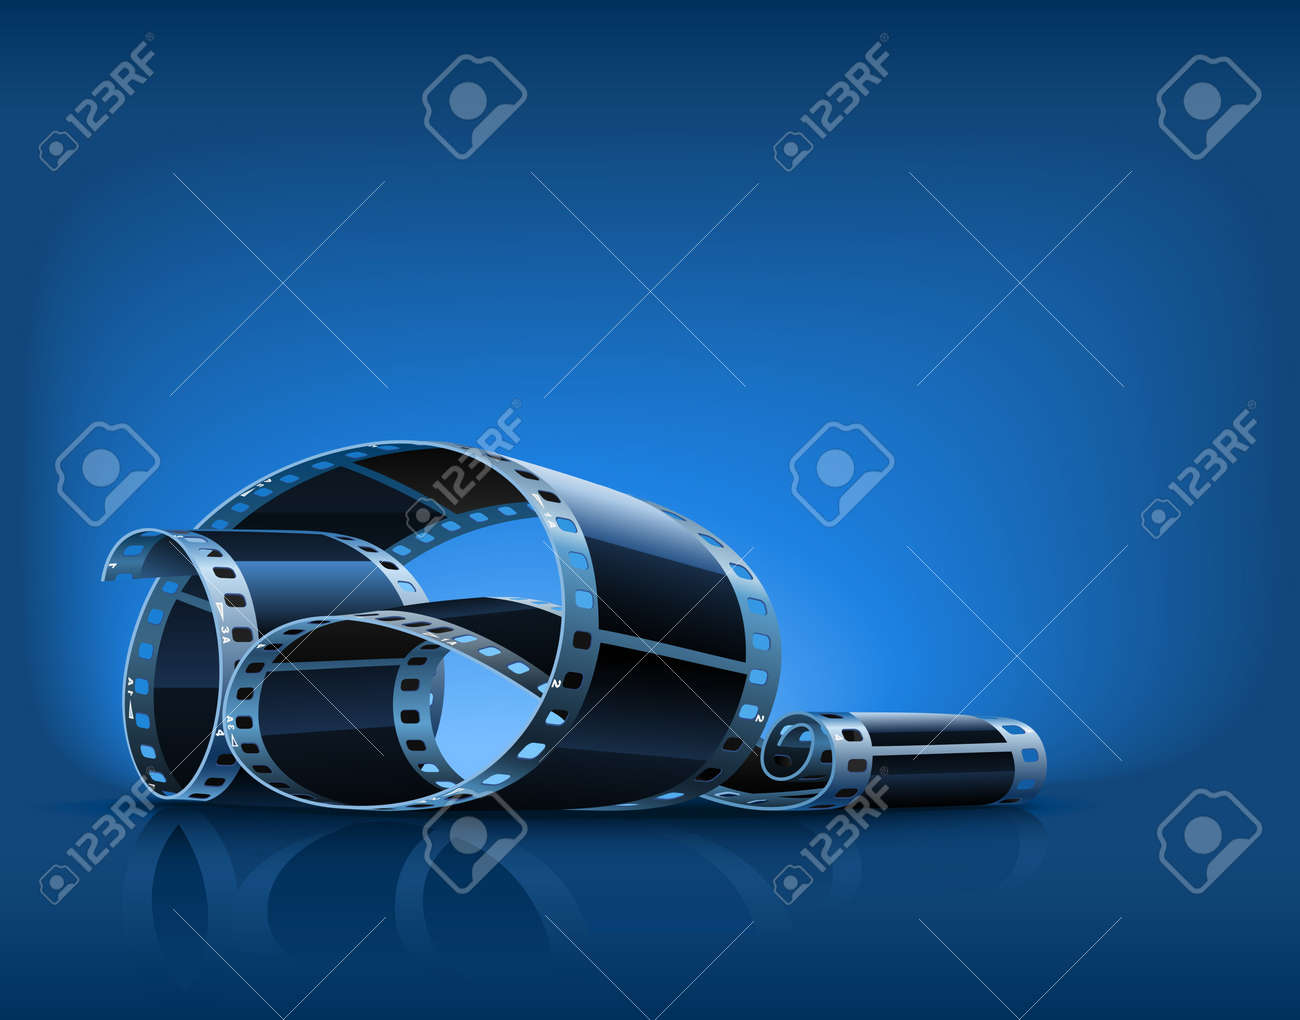 twisted film for photo or video recording on blue background illustration - 7845172